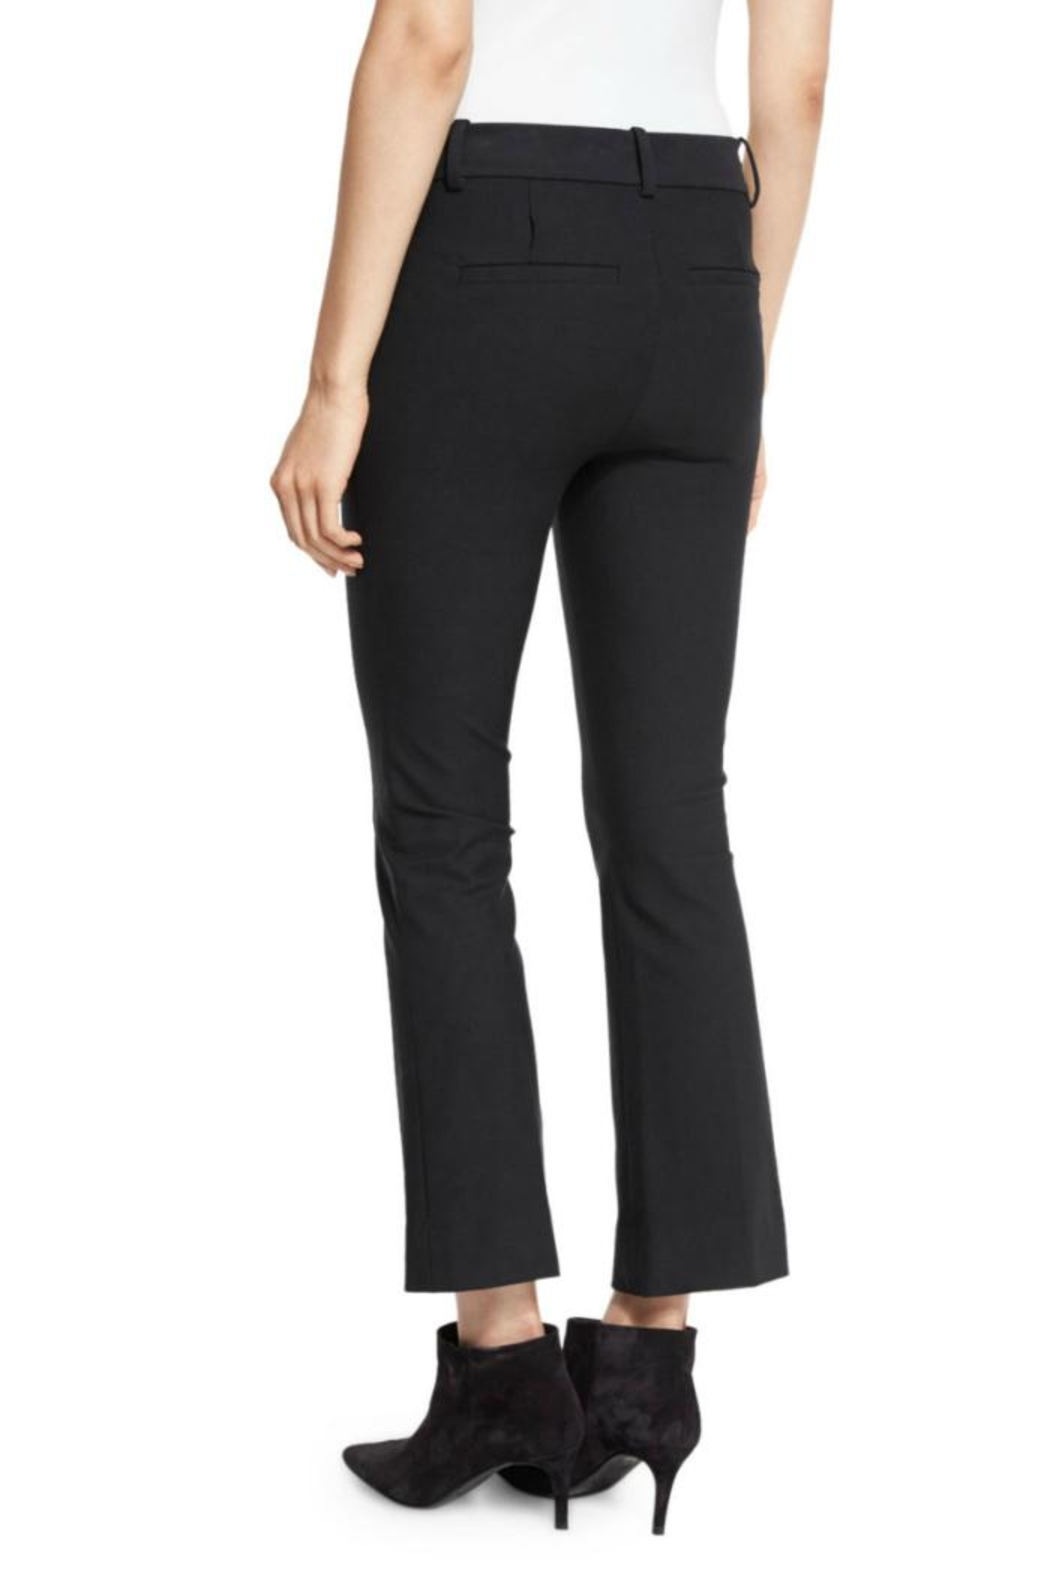 Derek Lam 10 Crosby Cropped Flare Trouser - Side Cropped Image